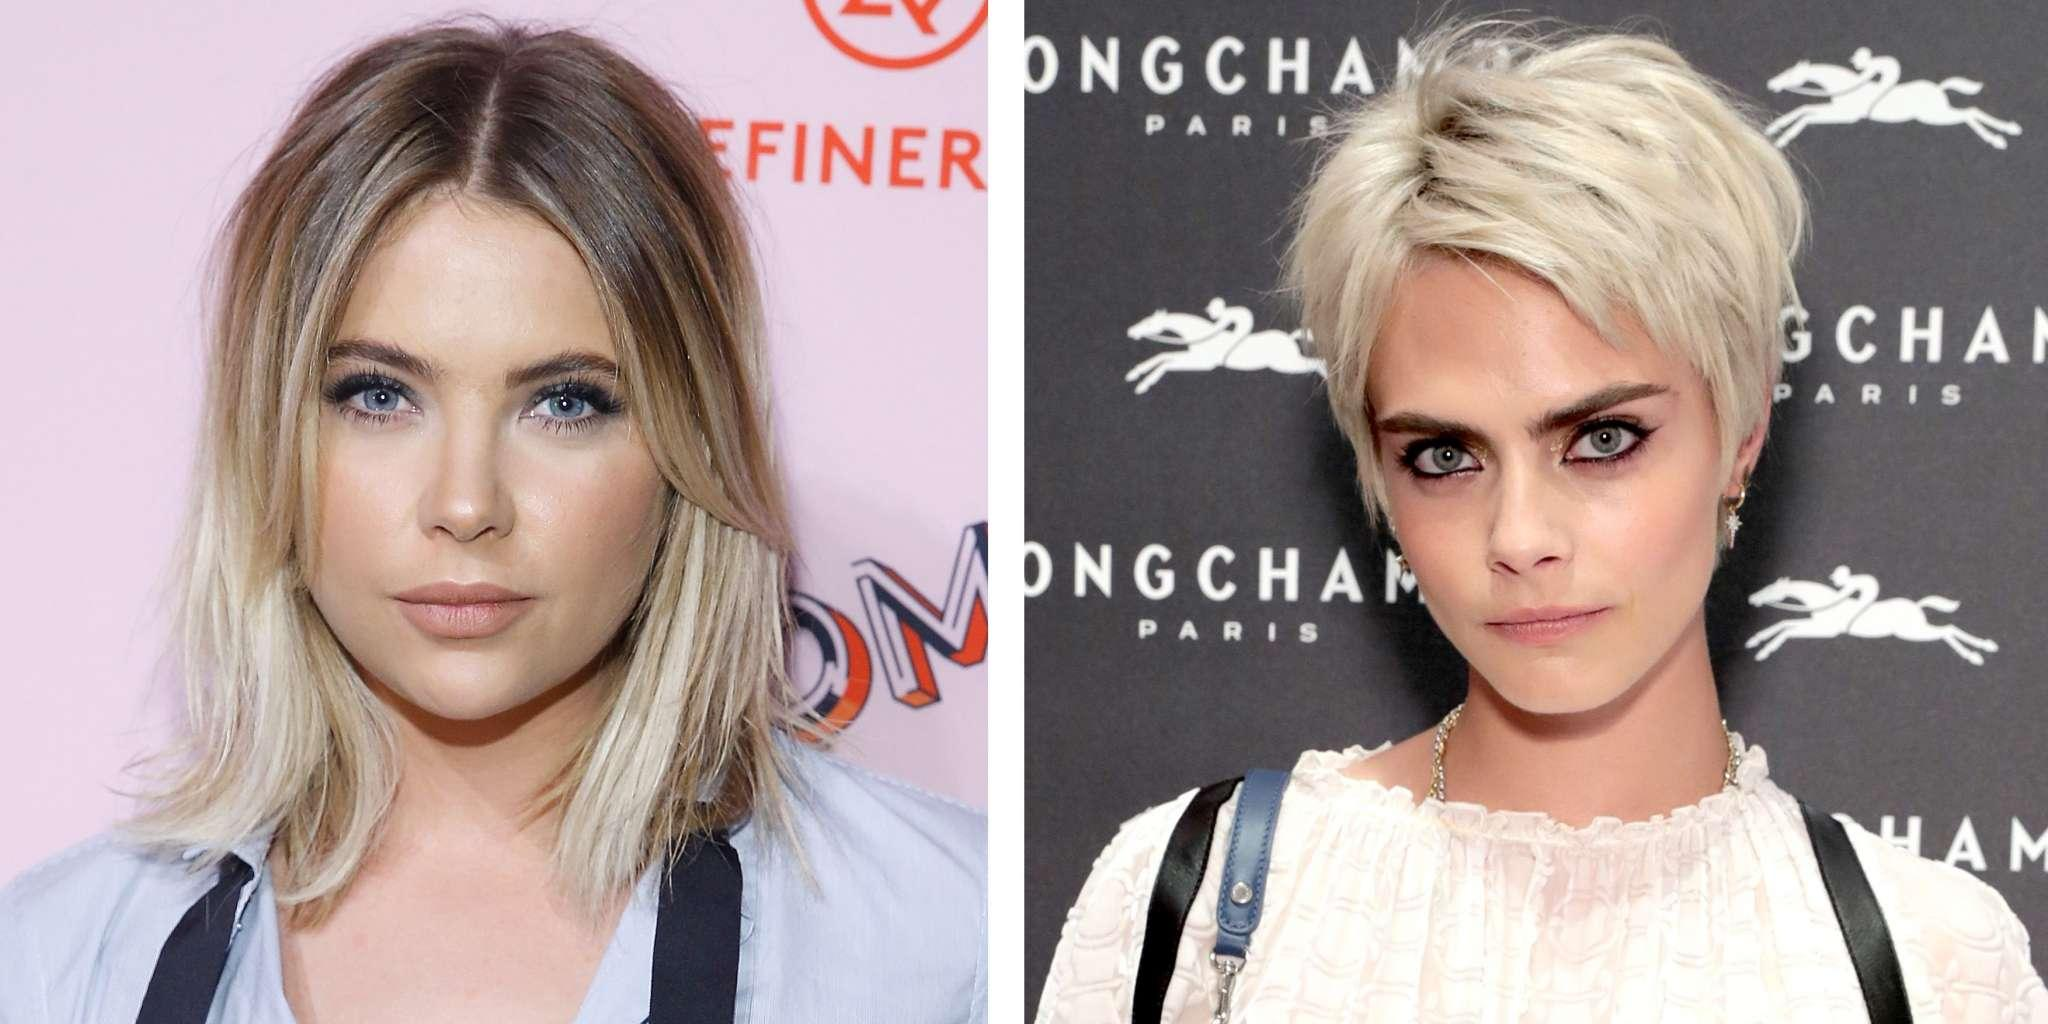 Ashley Benson And Cara Delevingne Fiercely Fire Back At Homophobic Haters!